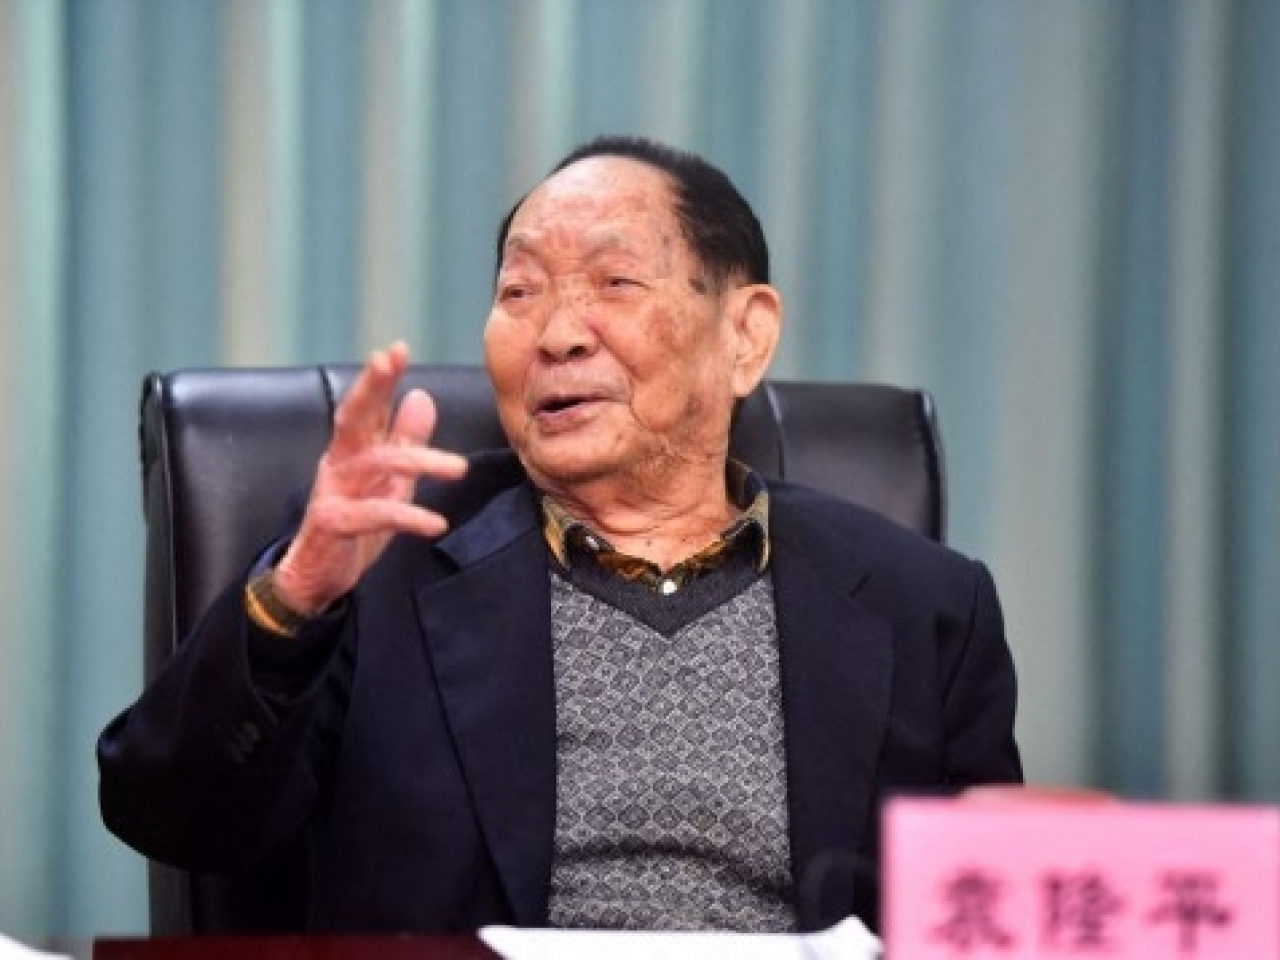 The late agronomist Yuan Longping attends a meeting in Hunan Hybrid Rice Research Centre in Changsha. File photo: AFP